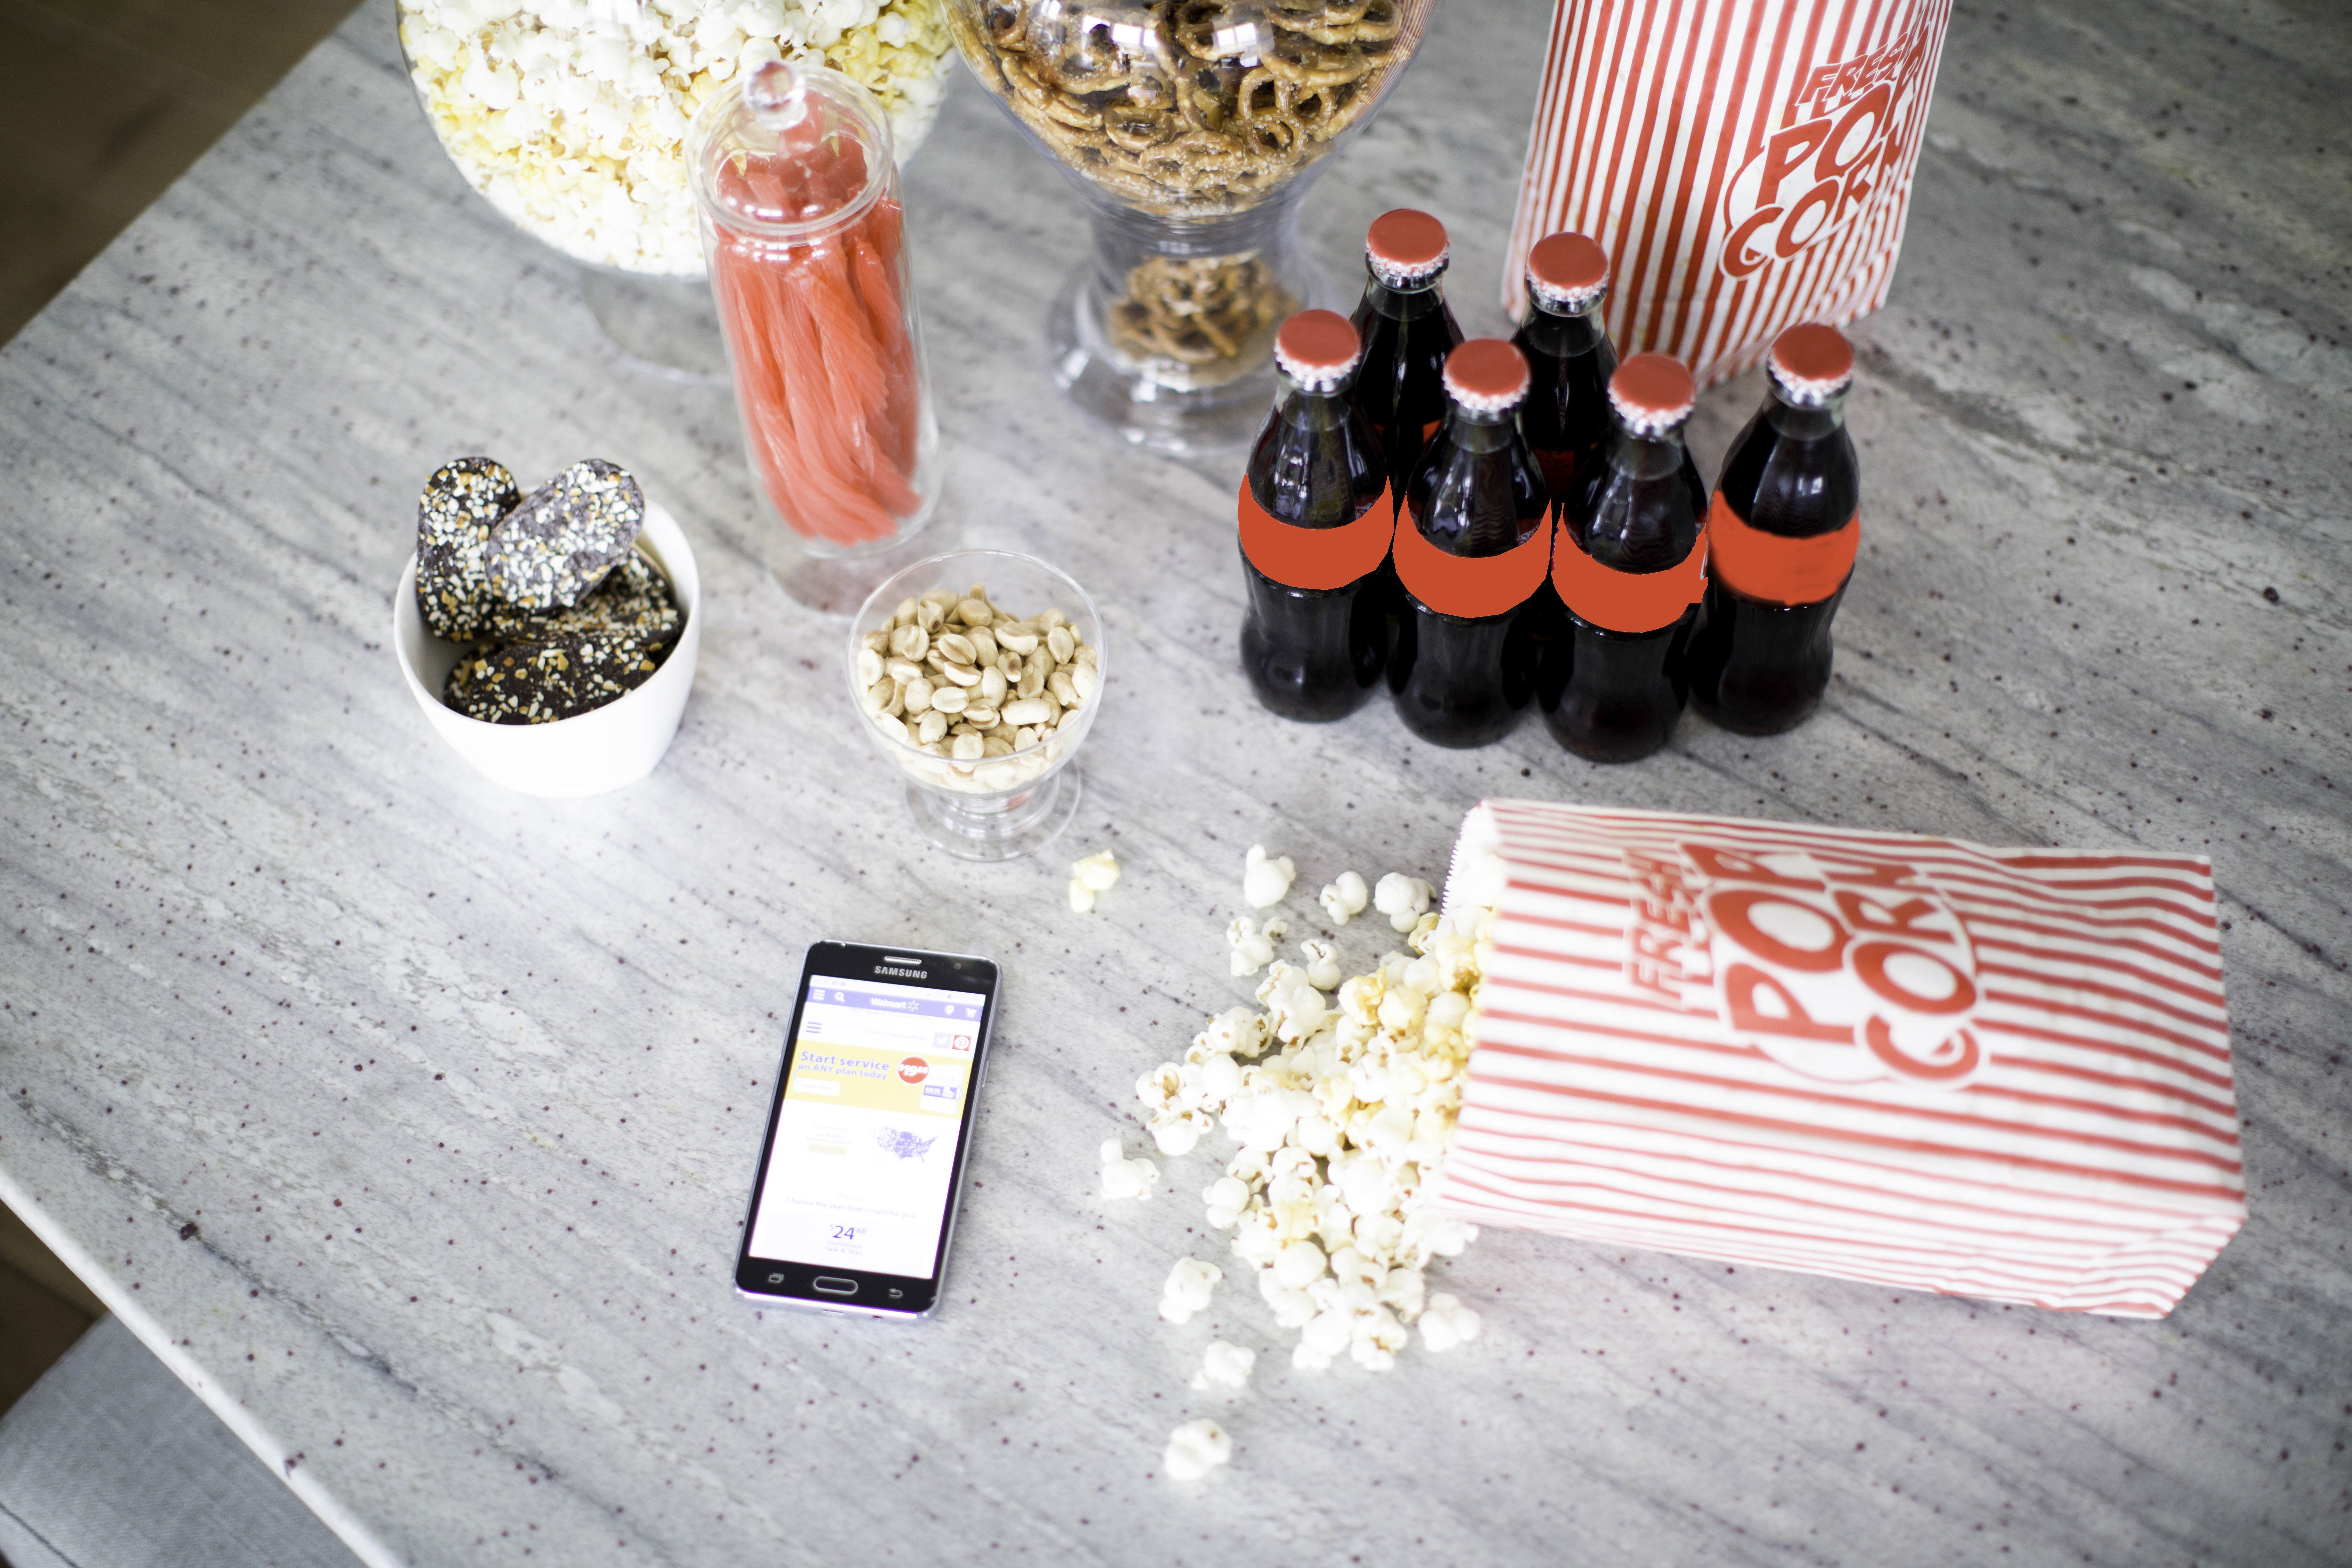 Movie night with Walmart Family Mobile, Max Your Tax Cash with Walmart Family Mobile Plus, Samsung Galaxy On5 #shop #YourTaxCash #CampaignHashtag #CollectiveBias #ad